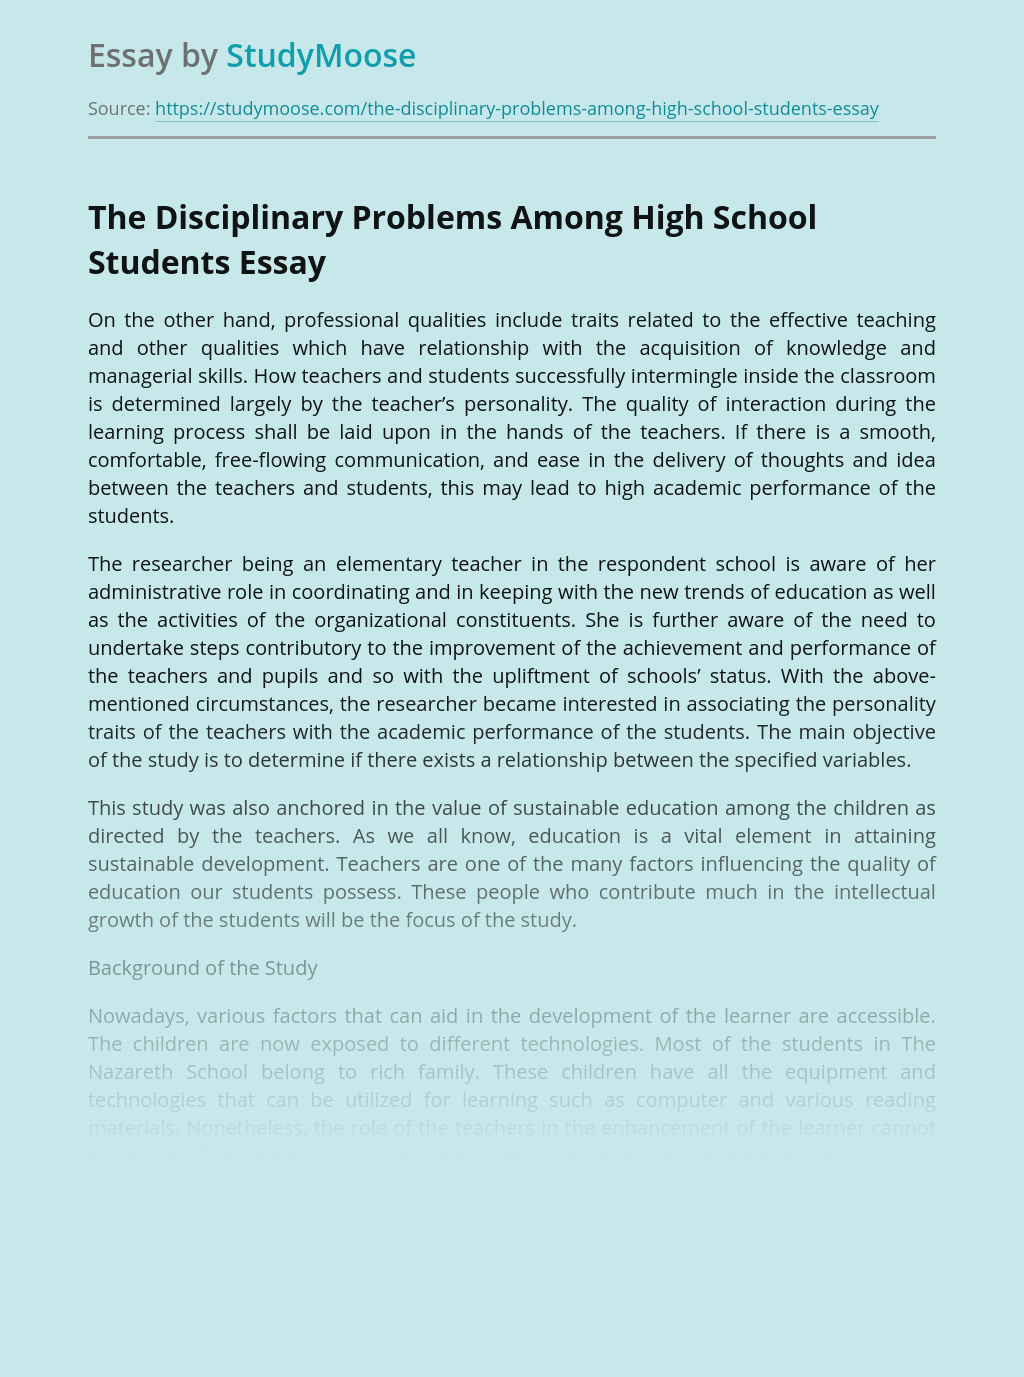 The Disciplinary Problems Among High School Students